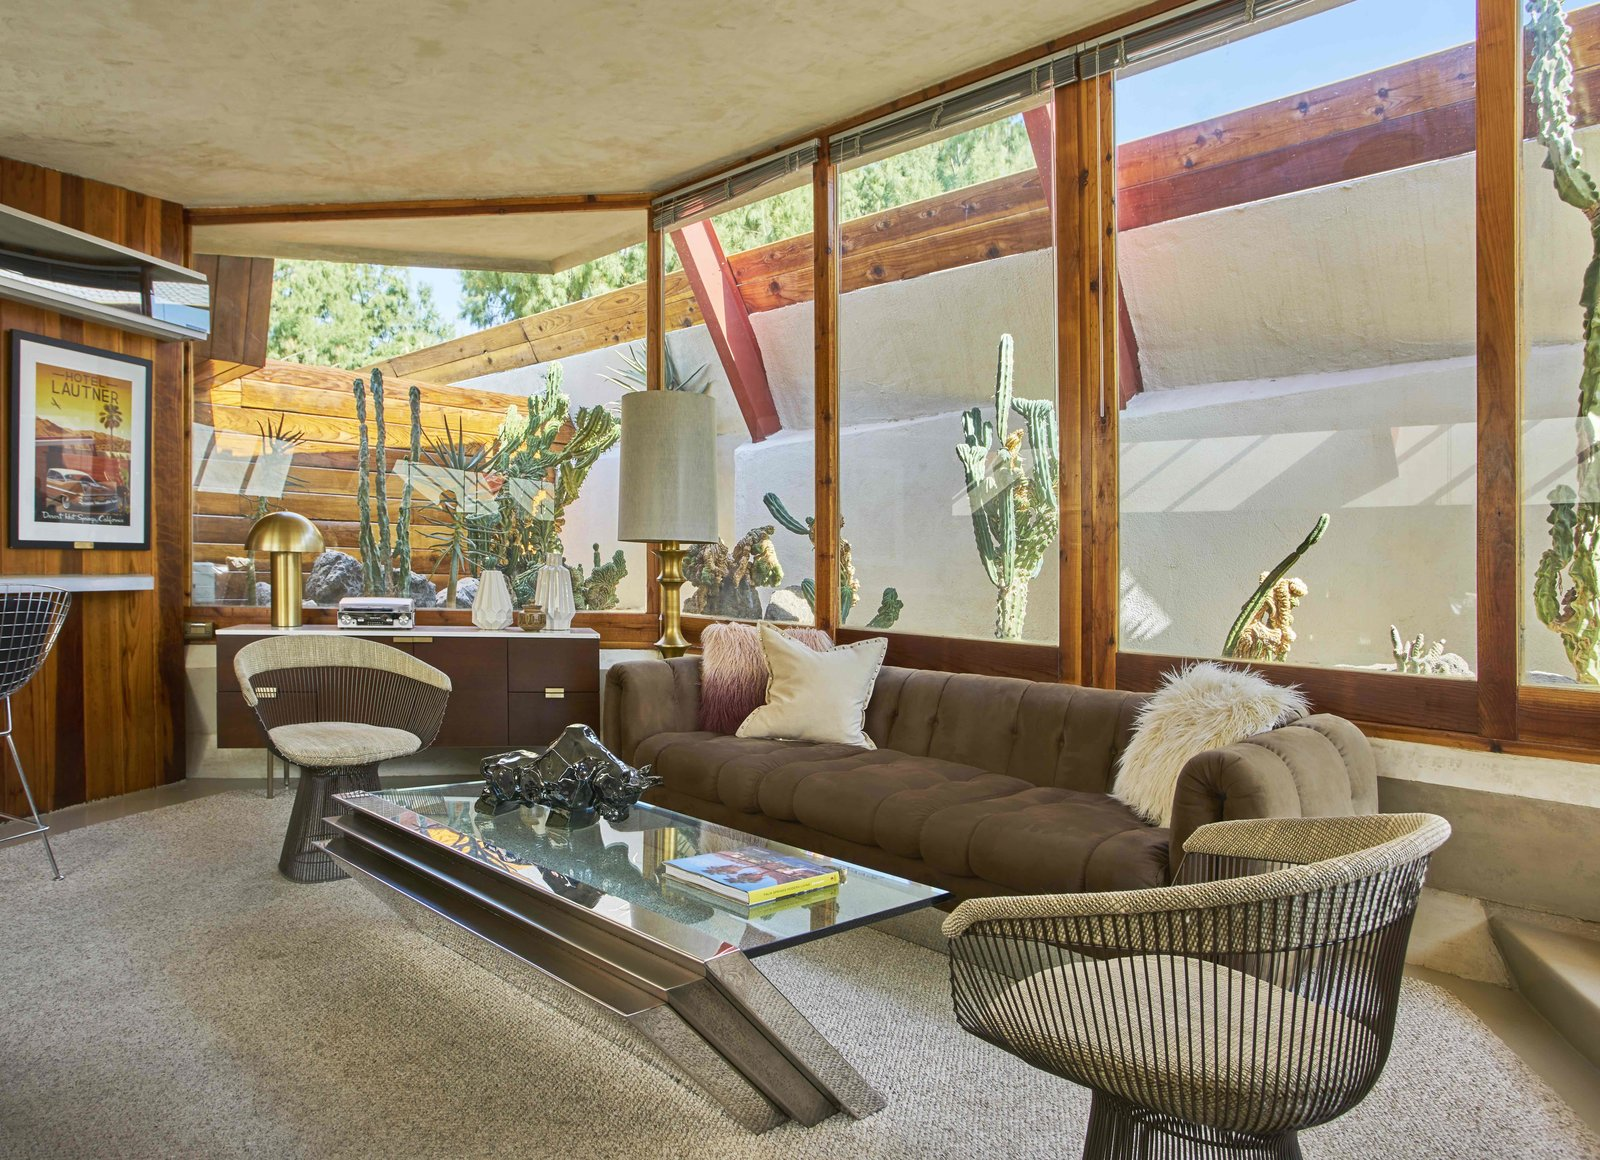 Living Room, Sofa, Table Lighting, Chair, Coffee Tables, Console Tables, Lamps, Carpet Floor, and Concrete Floor  Photo 1 of 13 in Escape to a John Lautner Micro-Resort in the Californian Desert